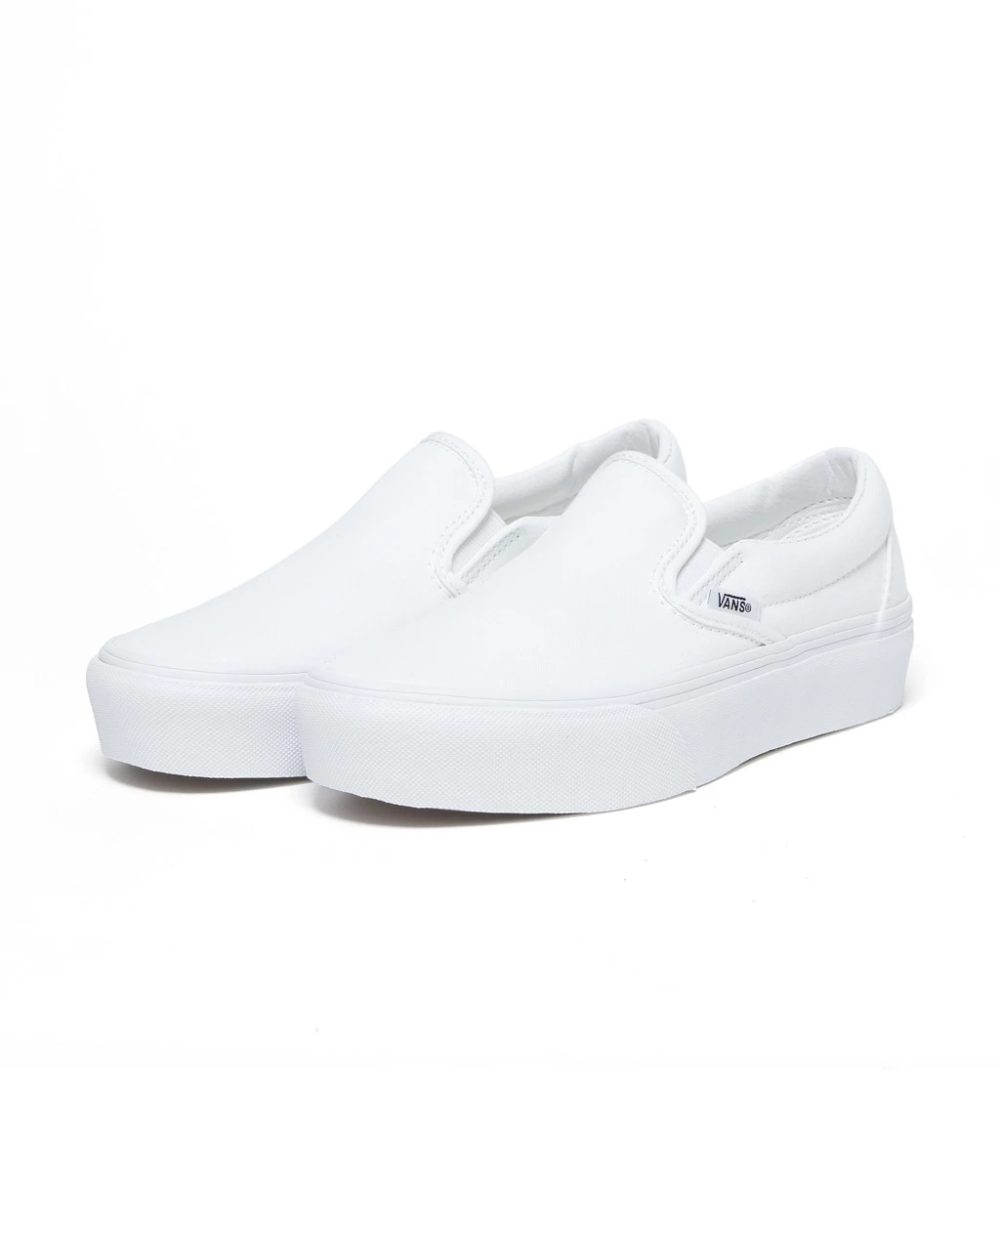 Pin By Singintom On Kpop Group Member White Slip On Vans White Vans Shoes White Slip On Shoes